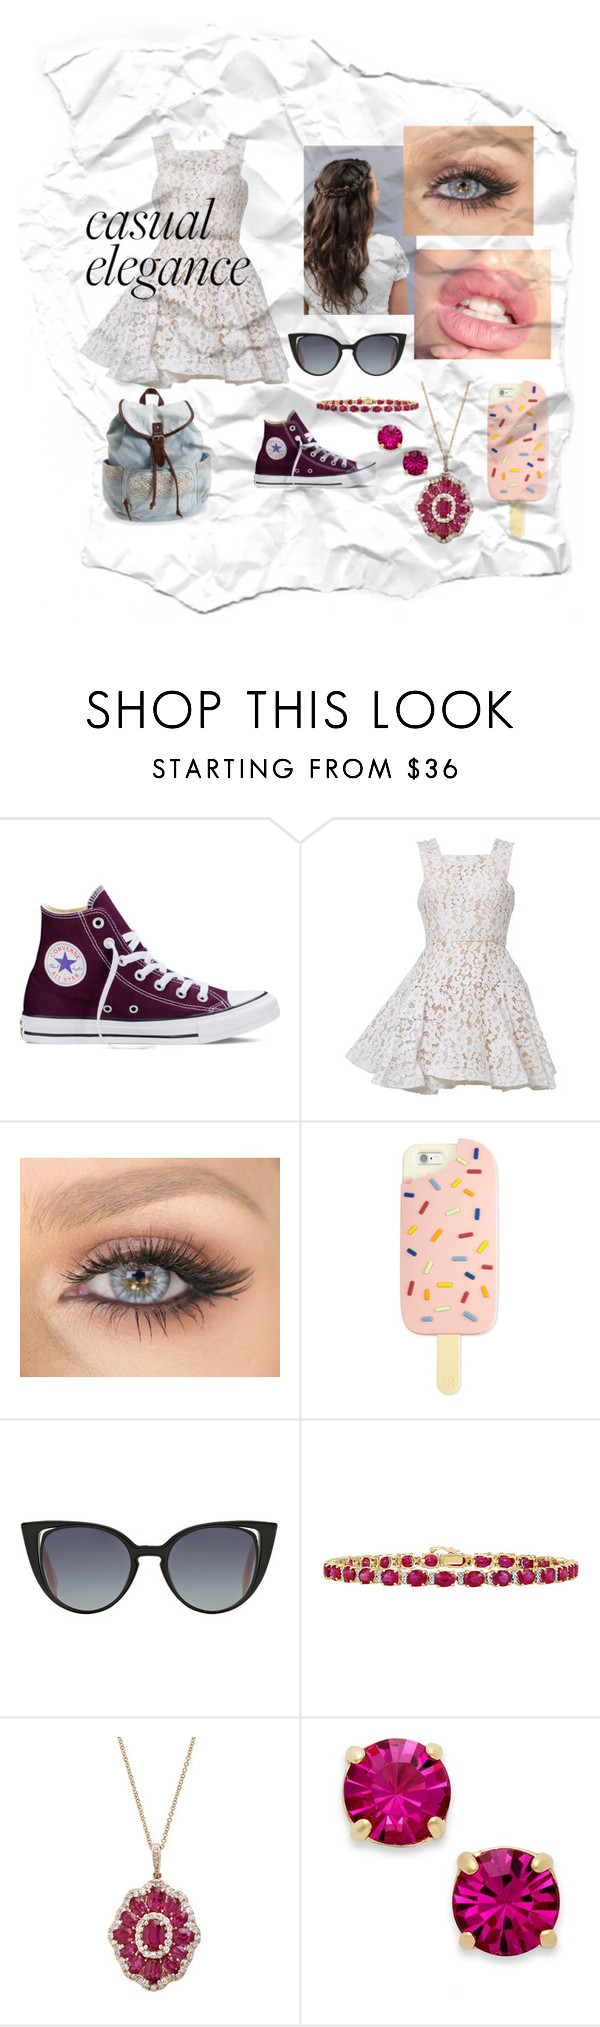 """""""Casually elegant date"""" by eva-maria-h ❤ liked on Polyvore featuring Converse, Alex Perry, Tory Burch, Fendi, Effy Jewelry, Kate Spade and Aéropostale"""